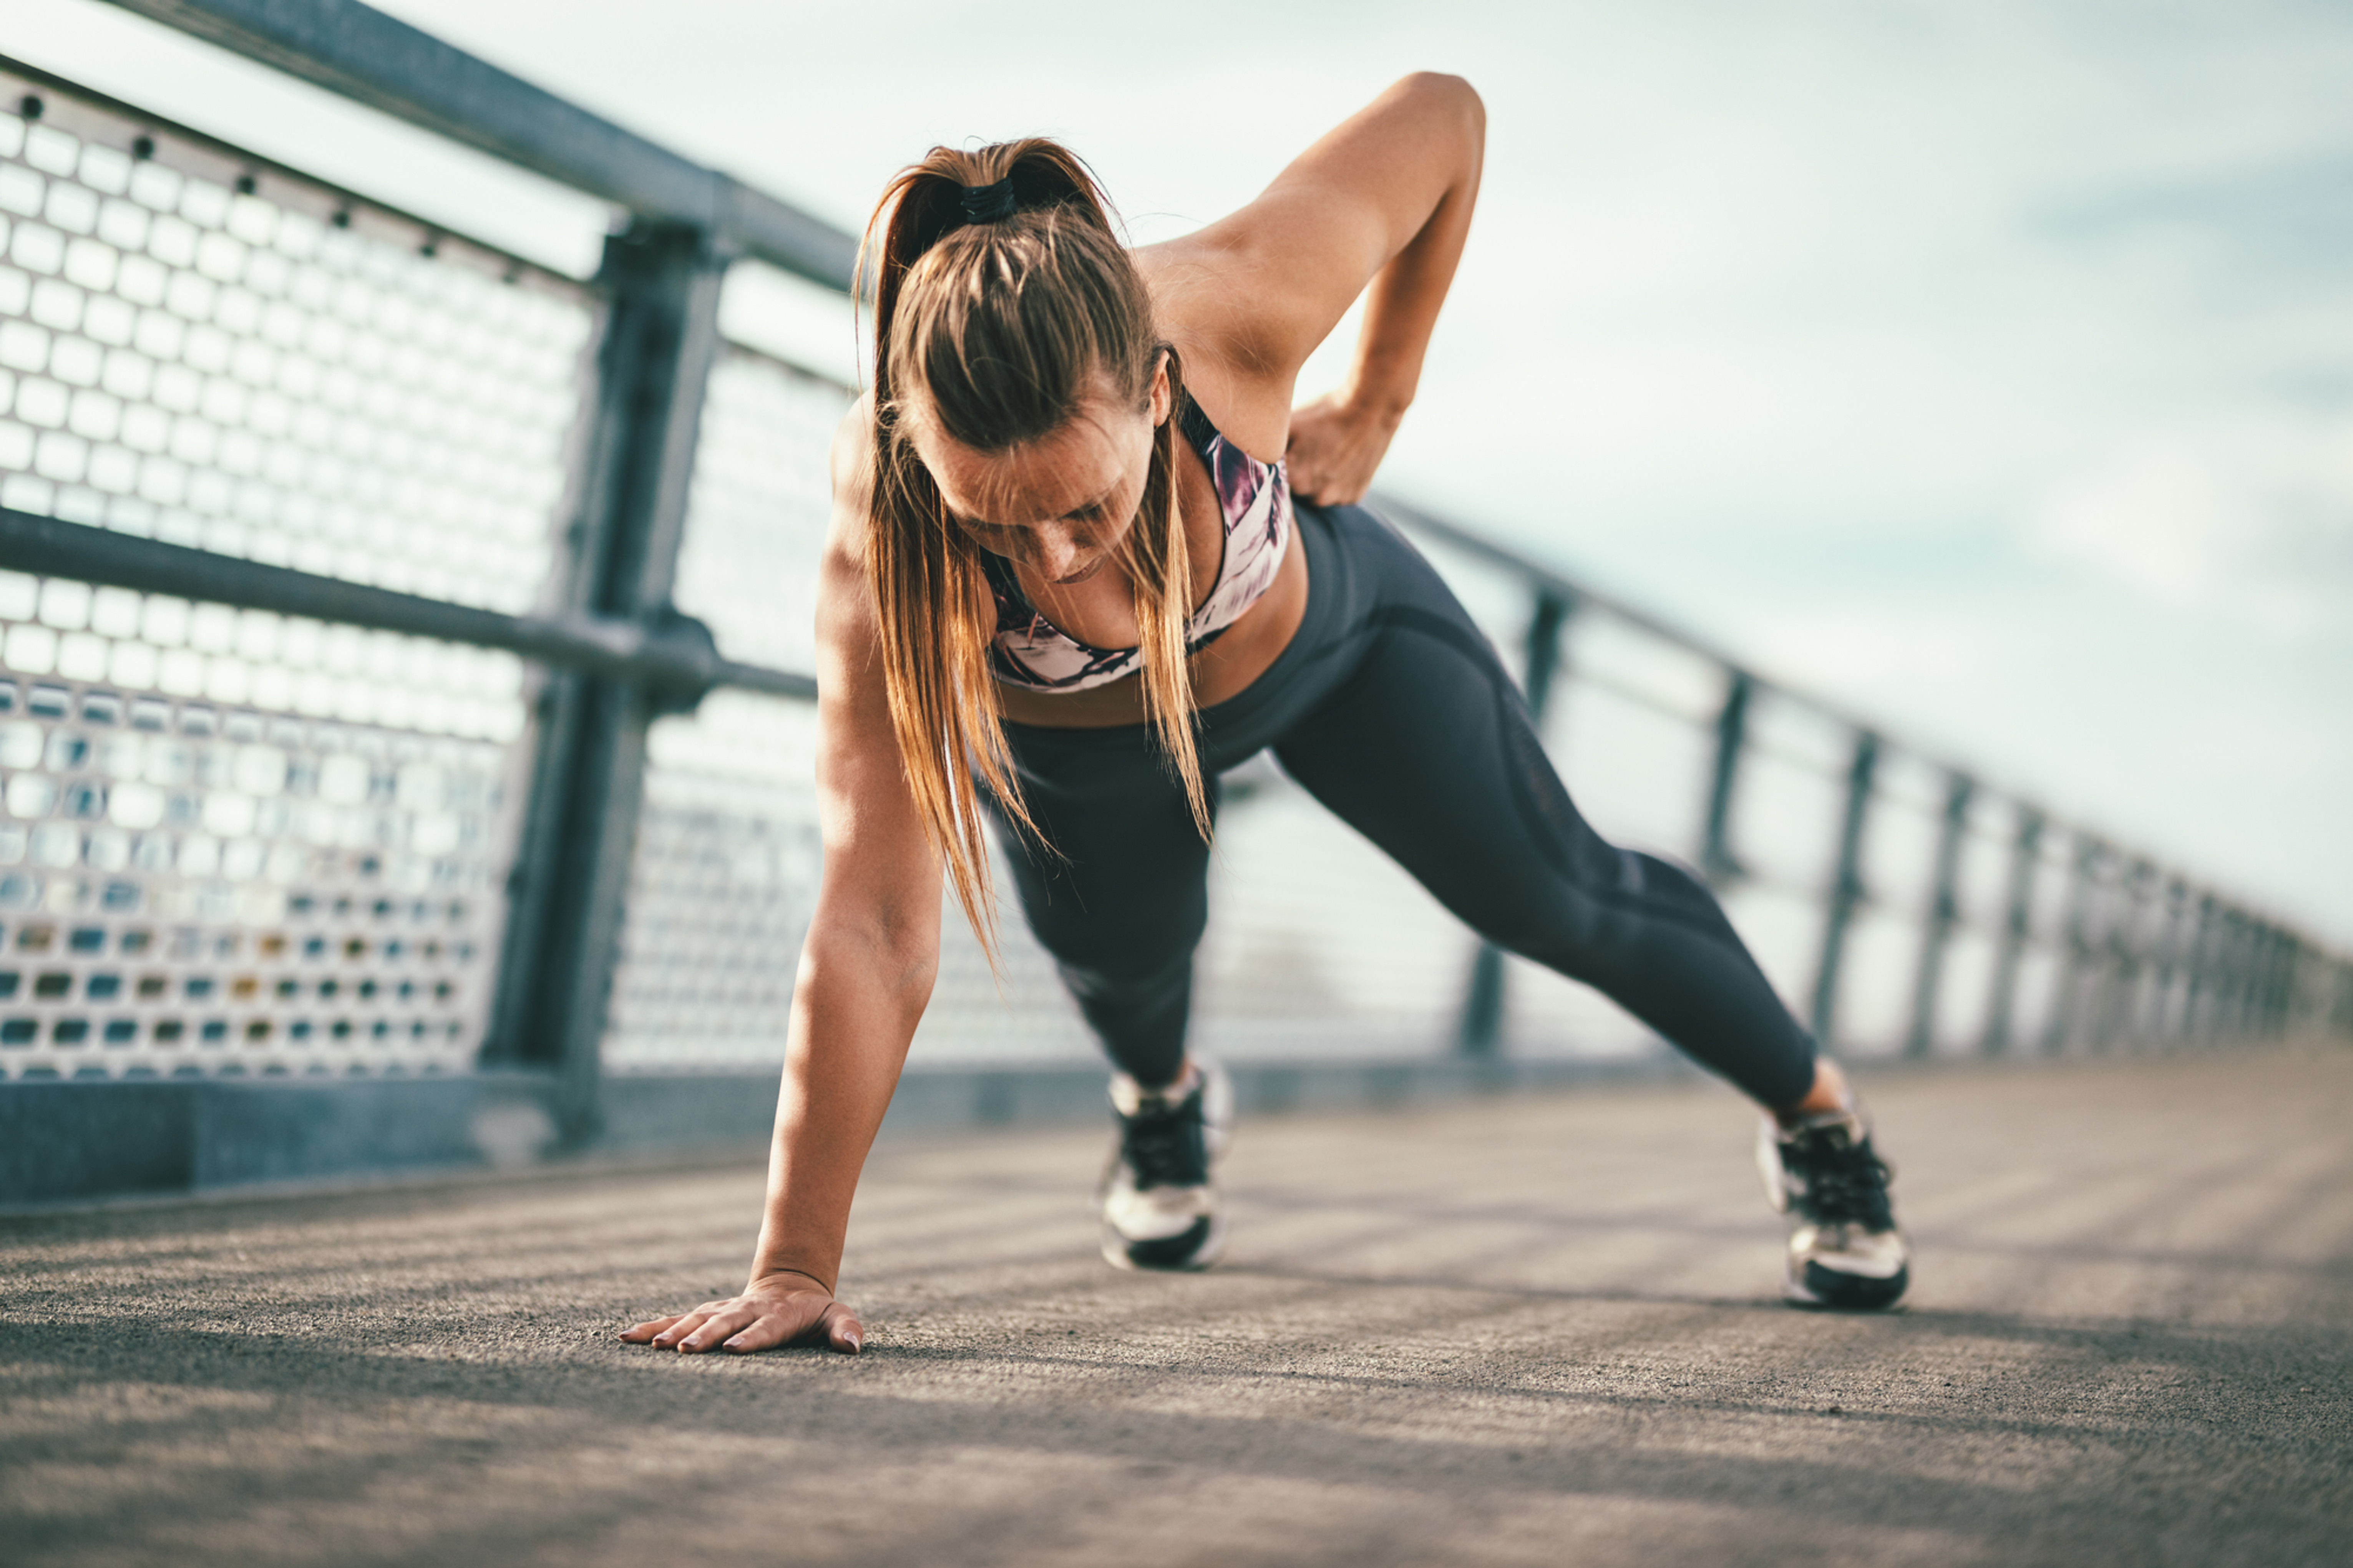 Get Strong and Lean Training Package